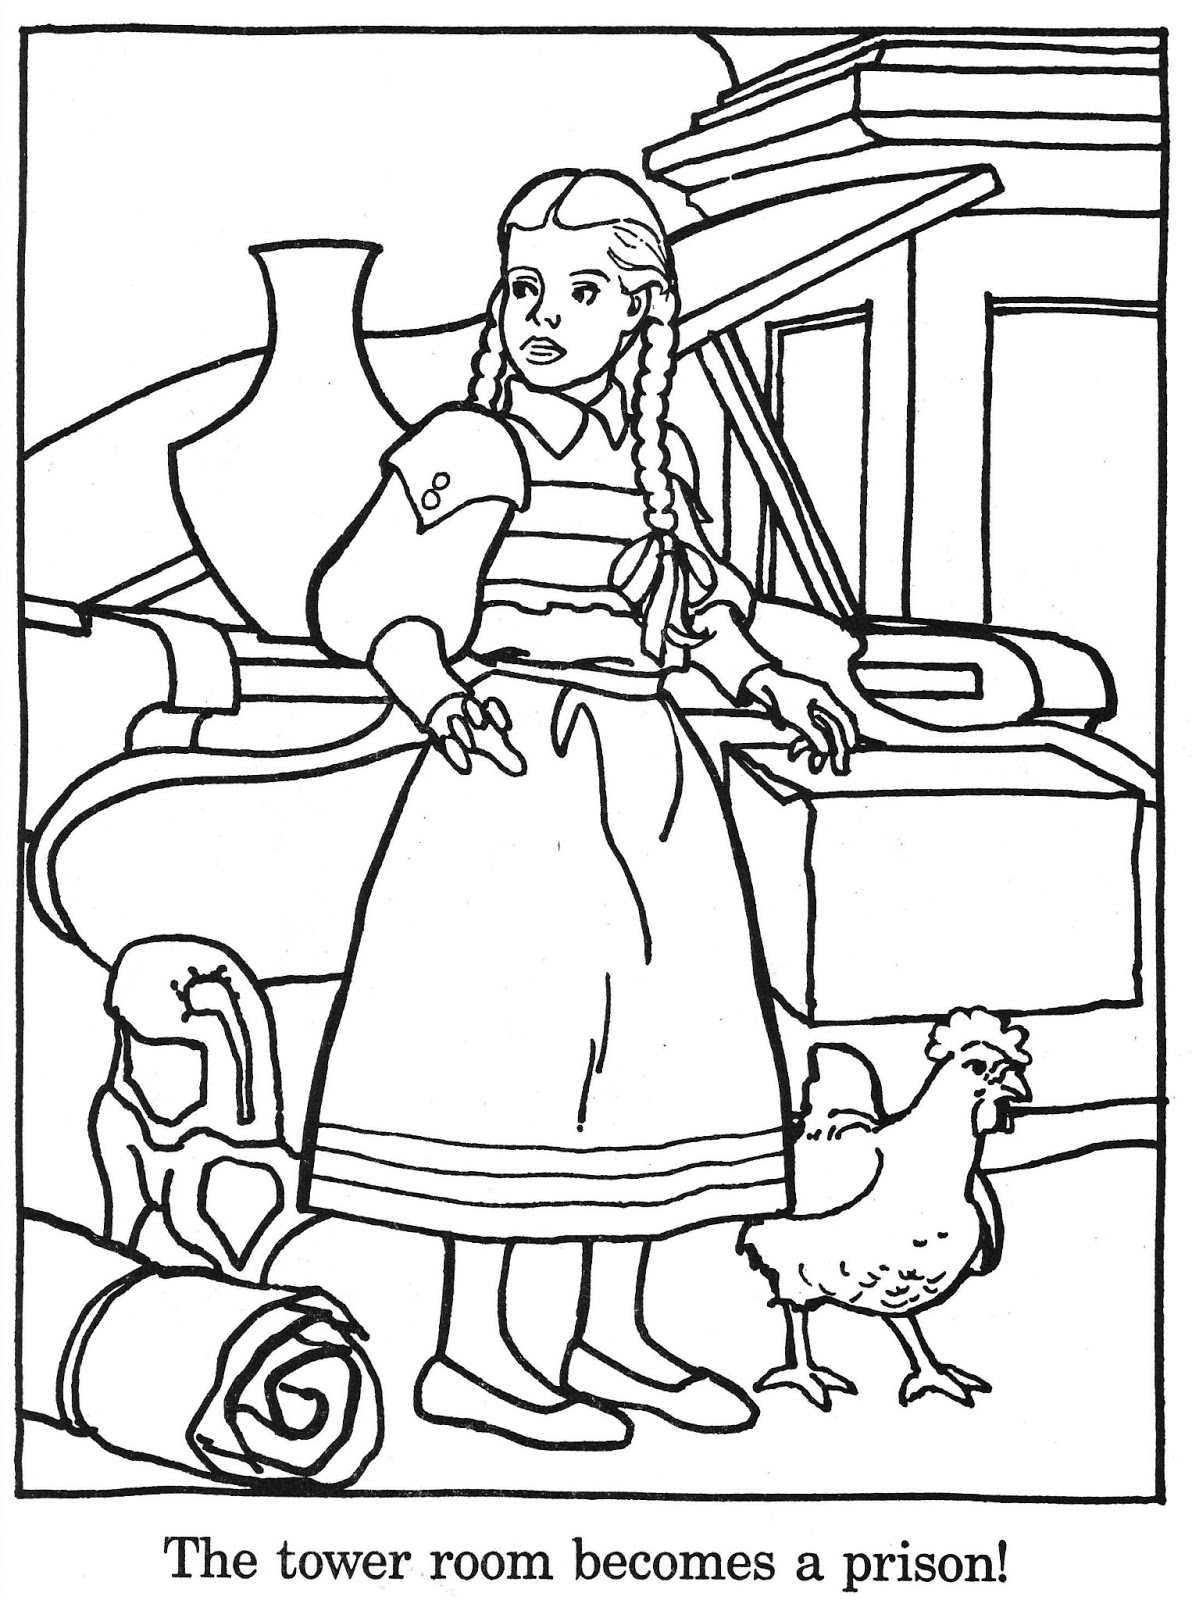 tiktok coloring pages | .: Coloring Pages